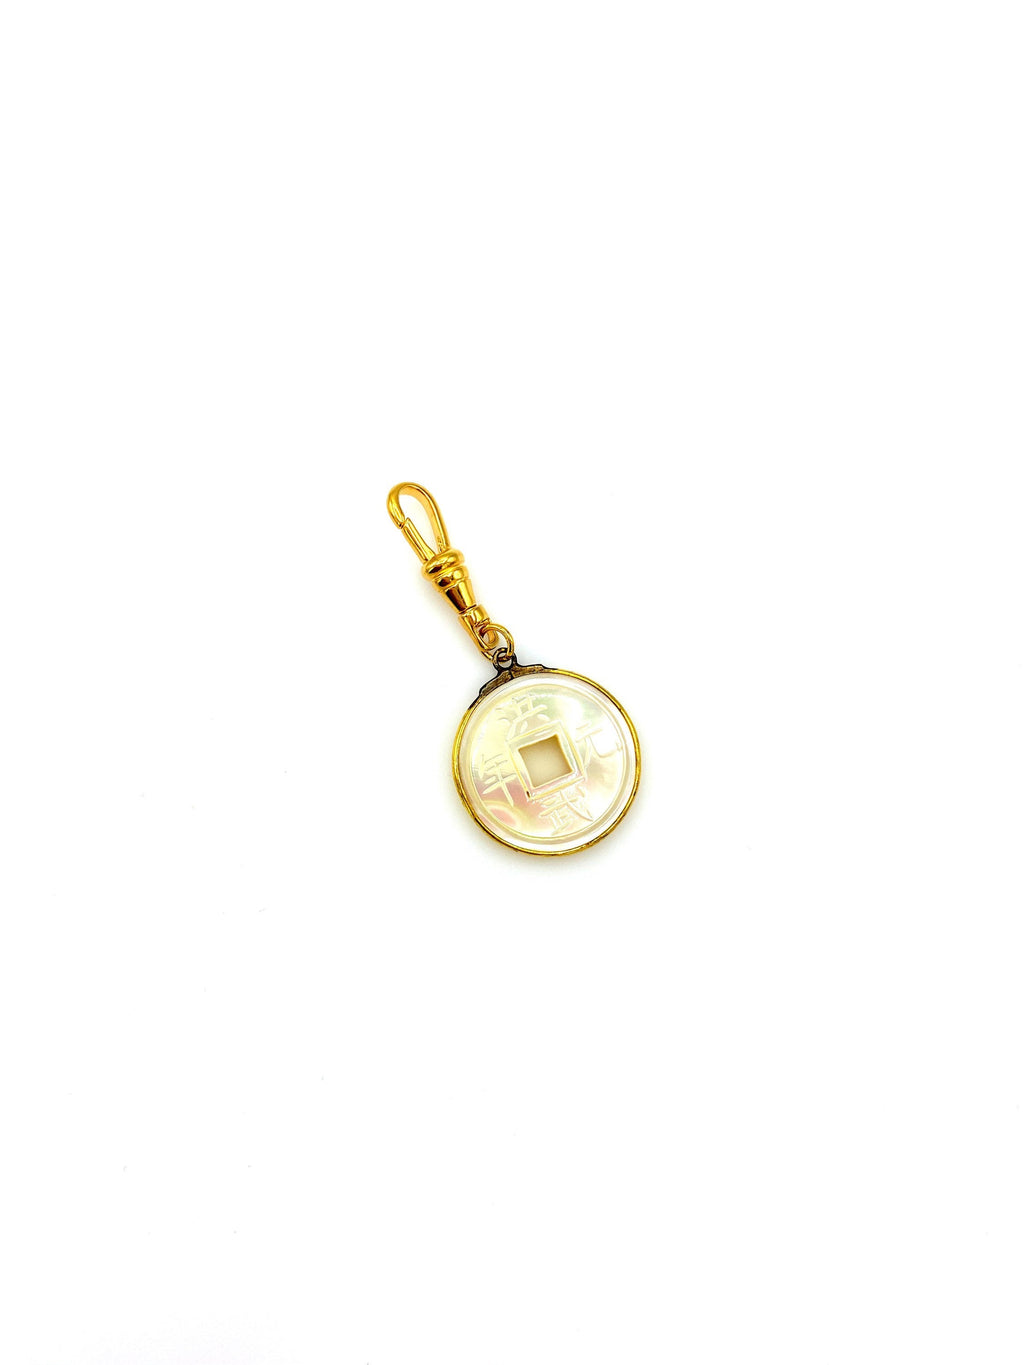 Asian Chinese Mother of Pearl Coin Charm Swivel Fob Jewelry